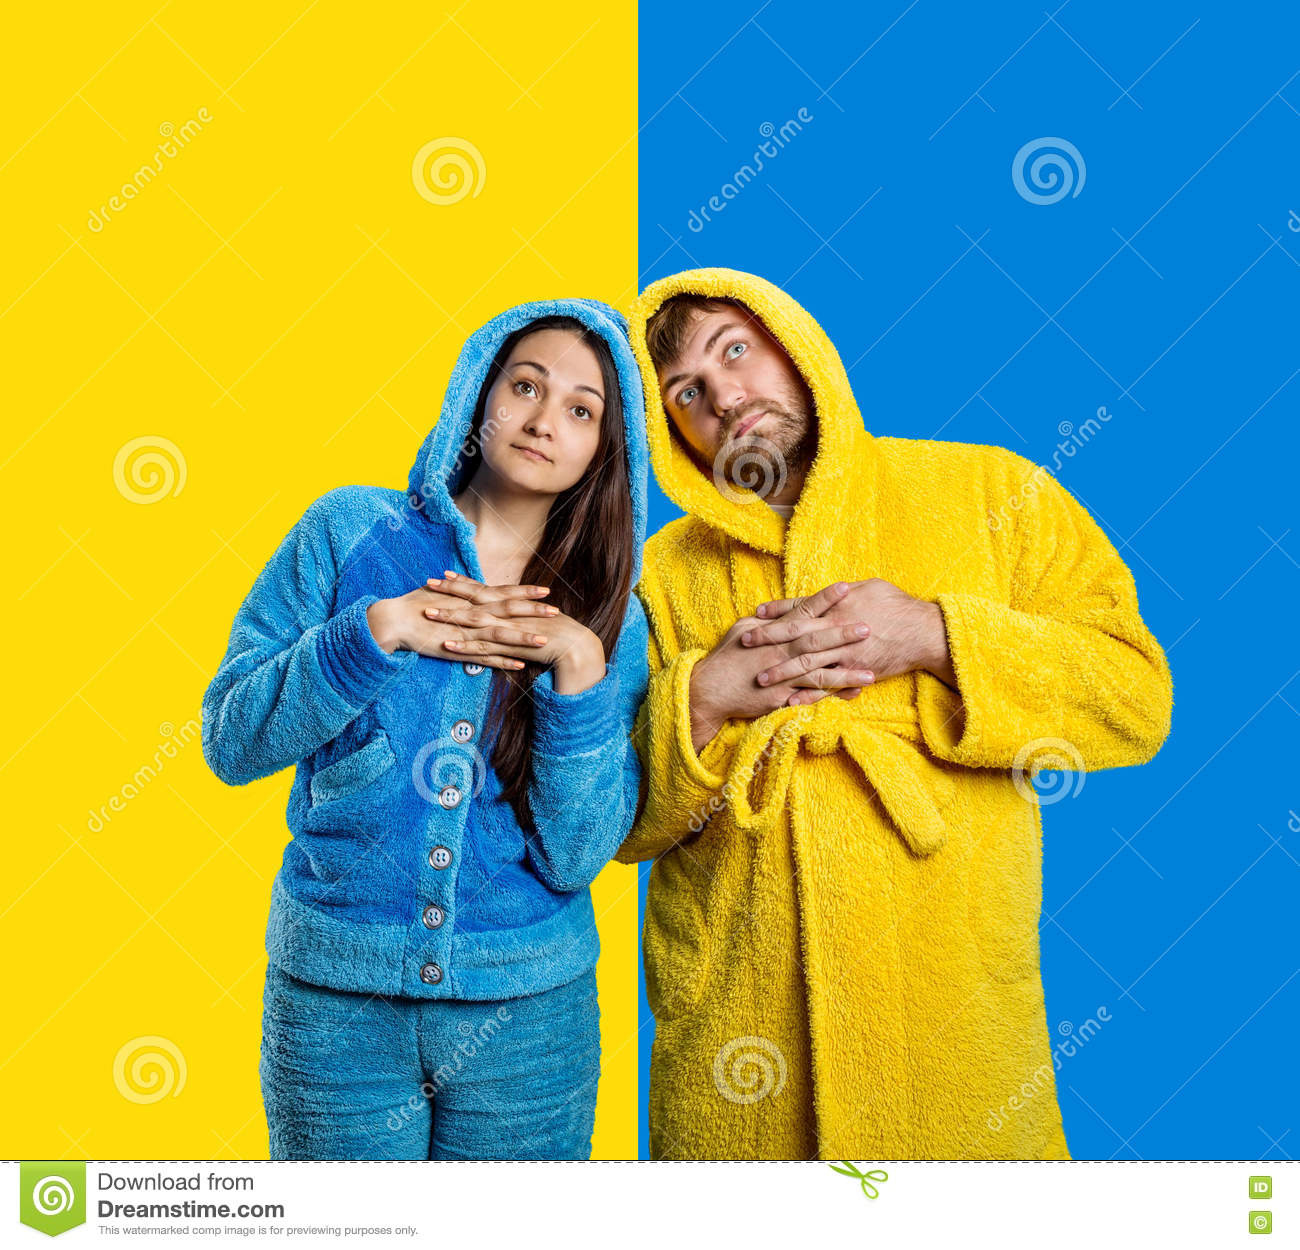 Couple Wearing Blue Pijamas And Yellow Bathrobe Stock Photo